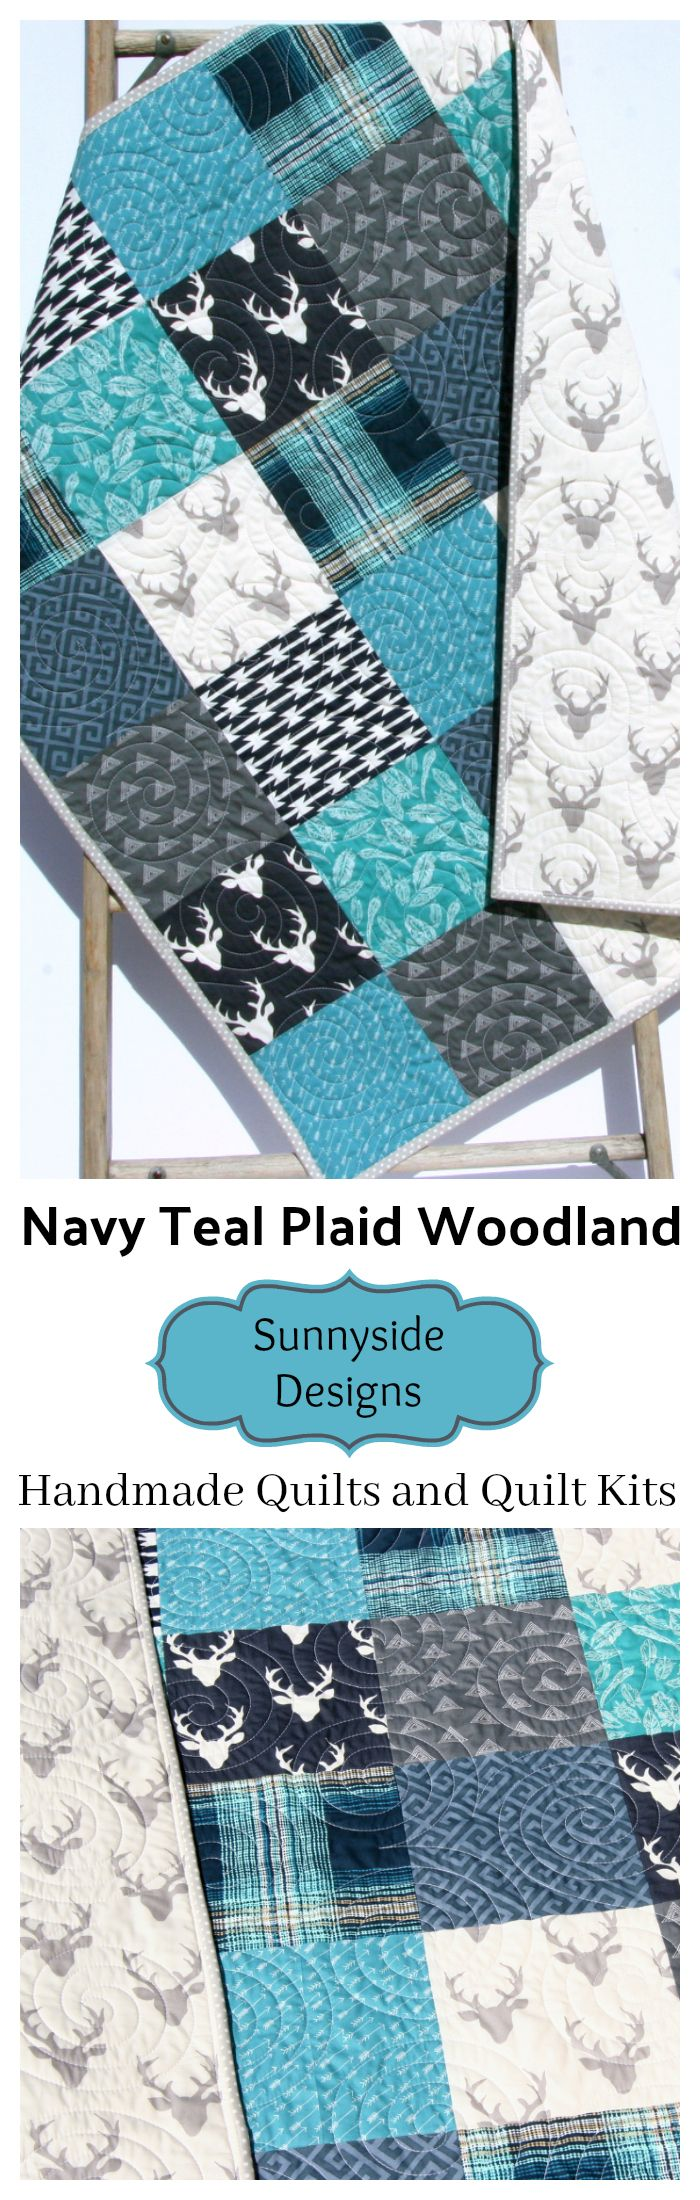 Navy Blue Plaid Baby Bedding, Baby Boy Quilt, Handmade Baby Bedding, Deer Buck Aztec Blue Buffalo Plaid  Feathers, Handmade Quilt for Sale, Teal Navy Blue Grey Gray, Throw Quilt Kit, Toddler Quilt Kit, Baby Quilt Kit, Twin Bedding Quilt Kit, Simple Easy Patchwork Quilting Project Sewing Craft Idea for Kids by Sunnyside Designs